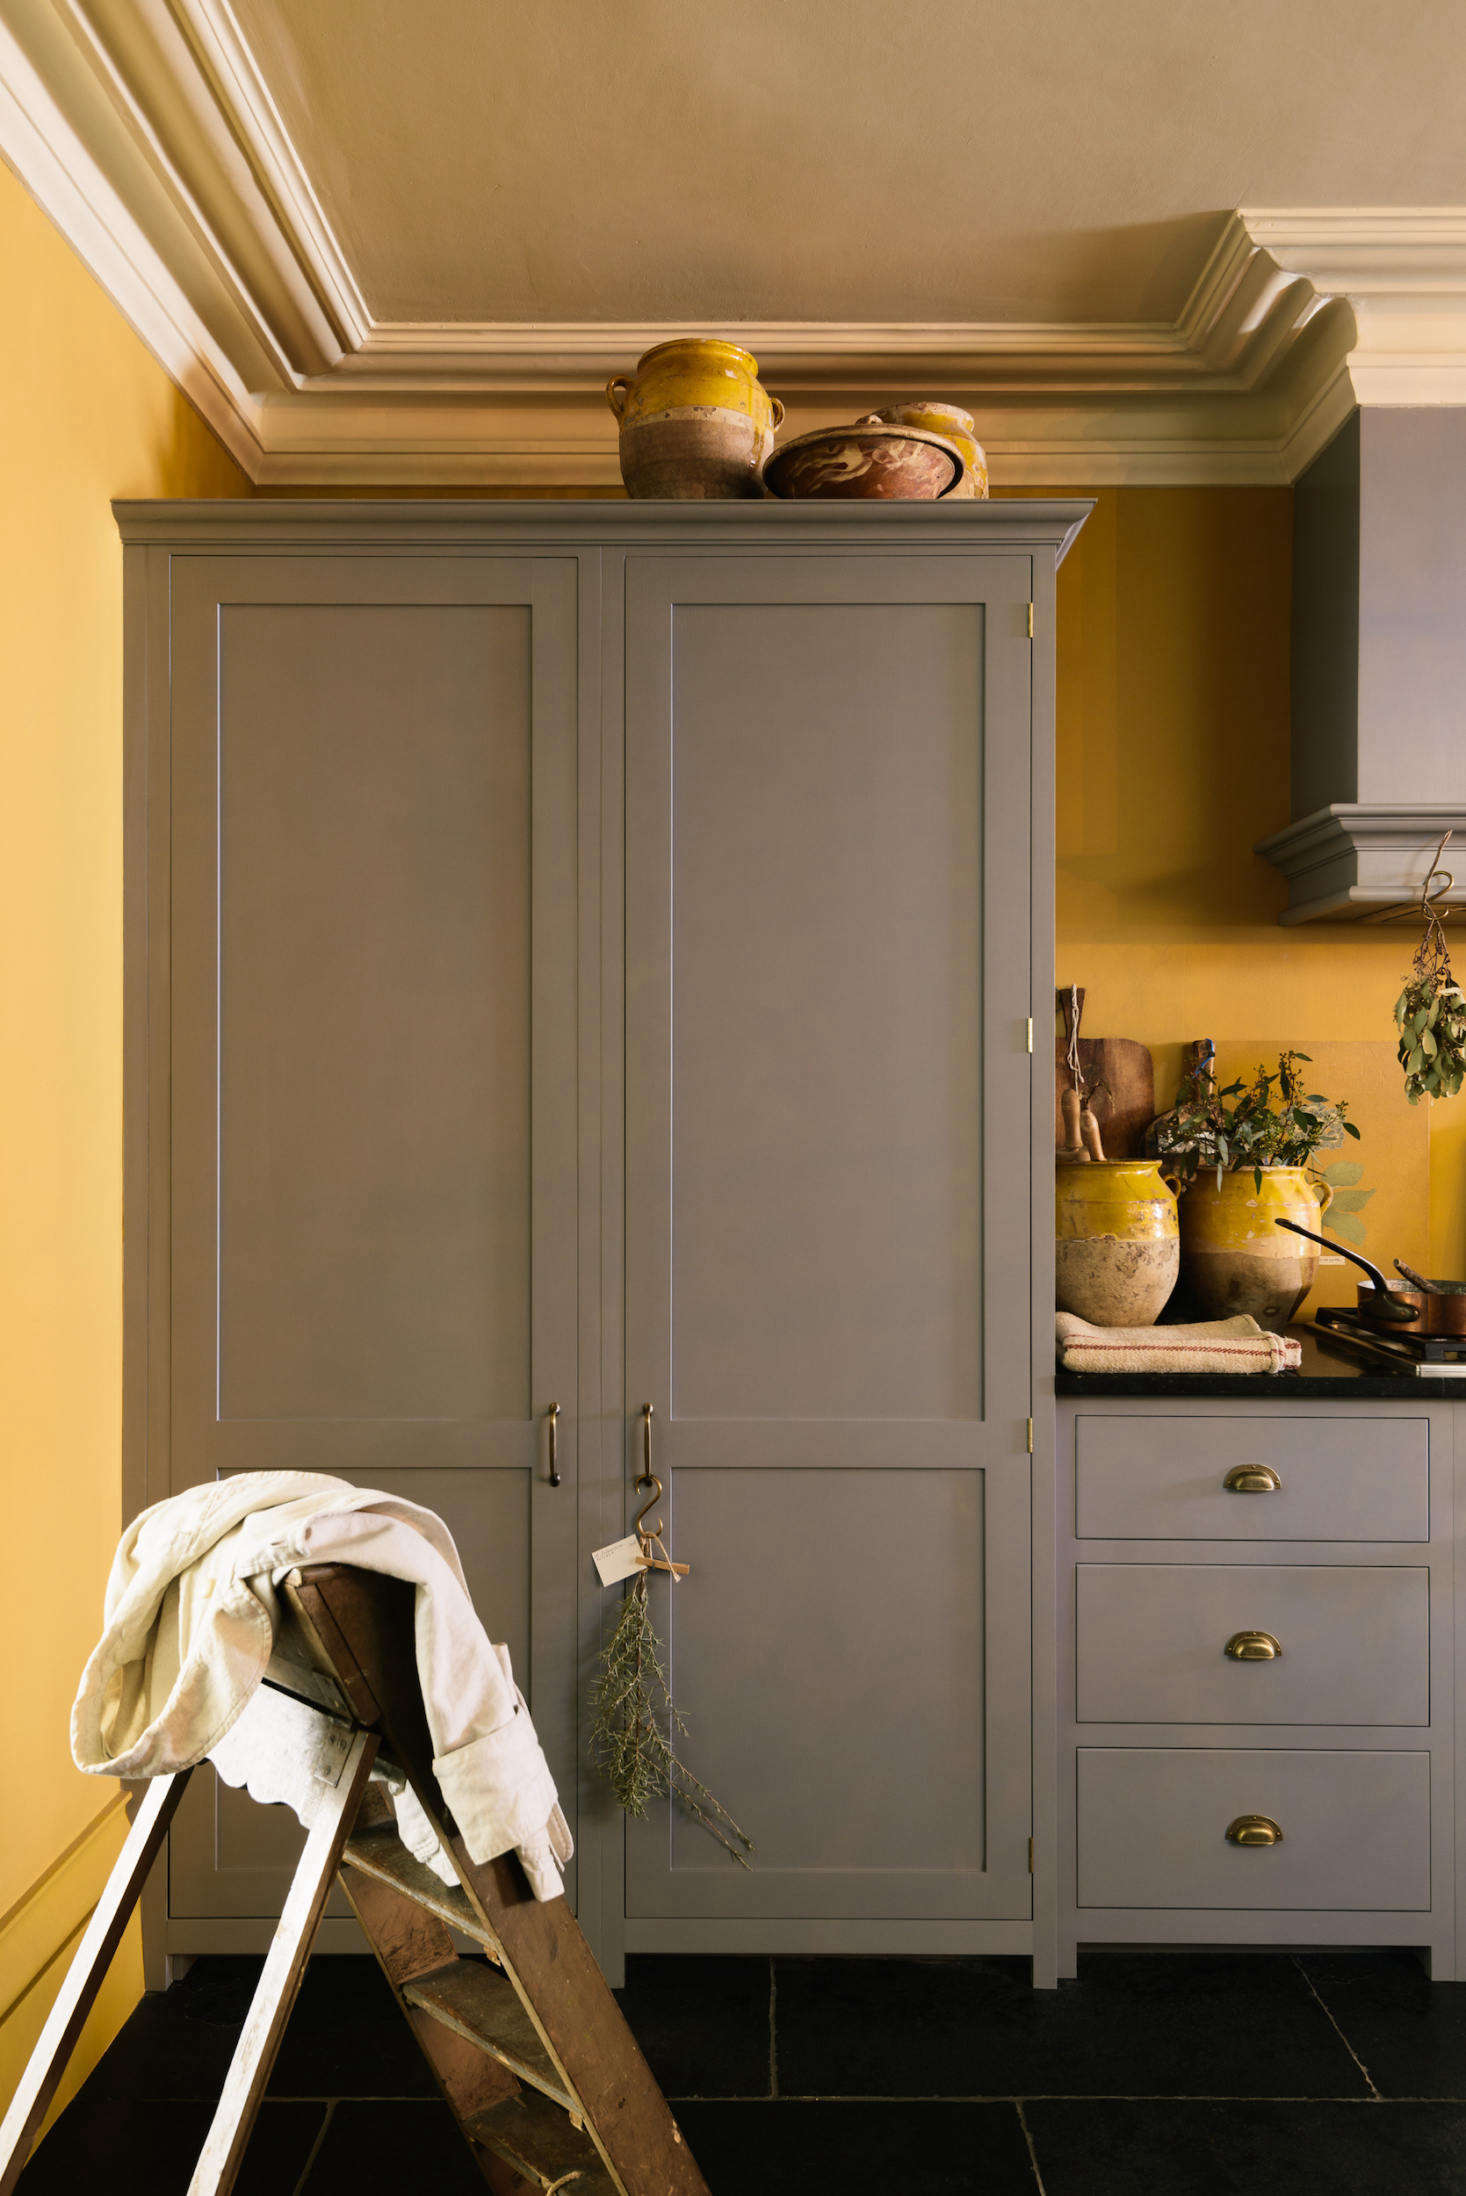 A full-sized Sub-Zero is hidden behind the left door of this tall cabinet. The door on the right conceals the larder.